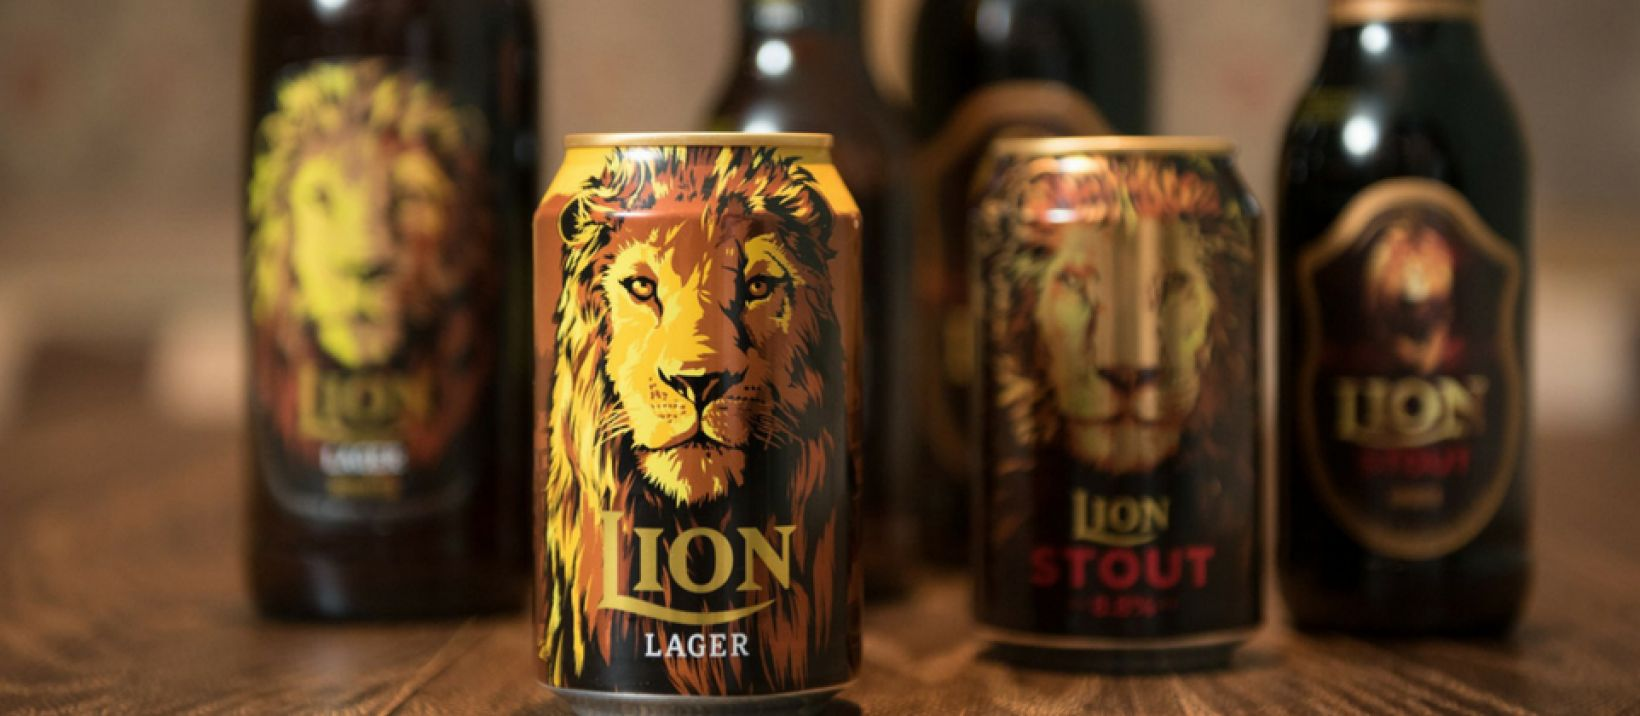 Photo for: A Drink That Roars